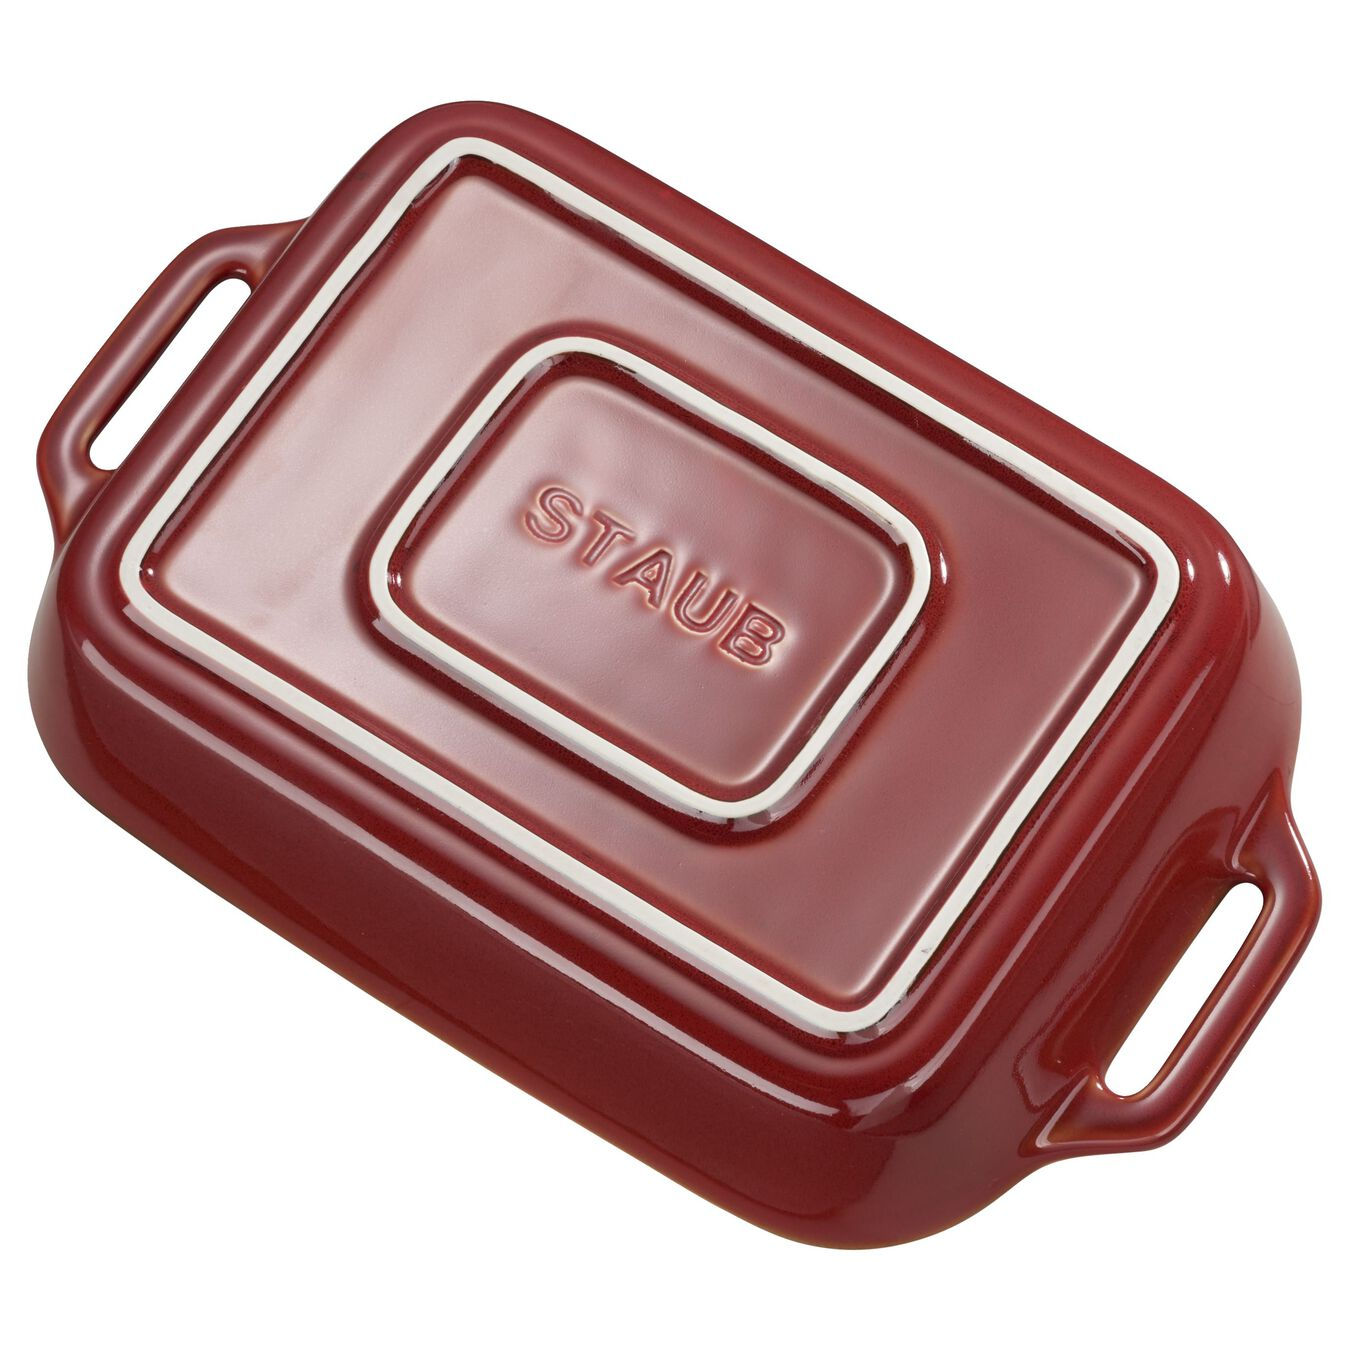 2-pcs square Ensemble plats de cuisson pour le four, Red,,large 3